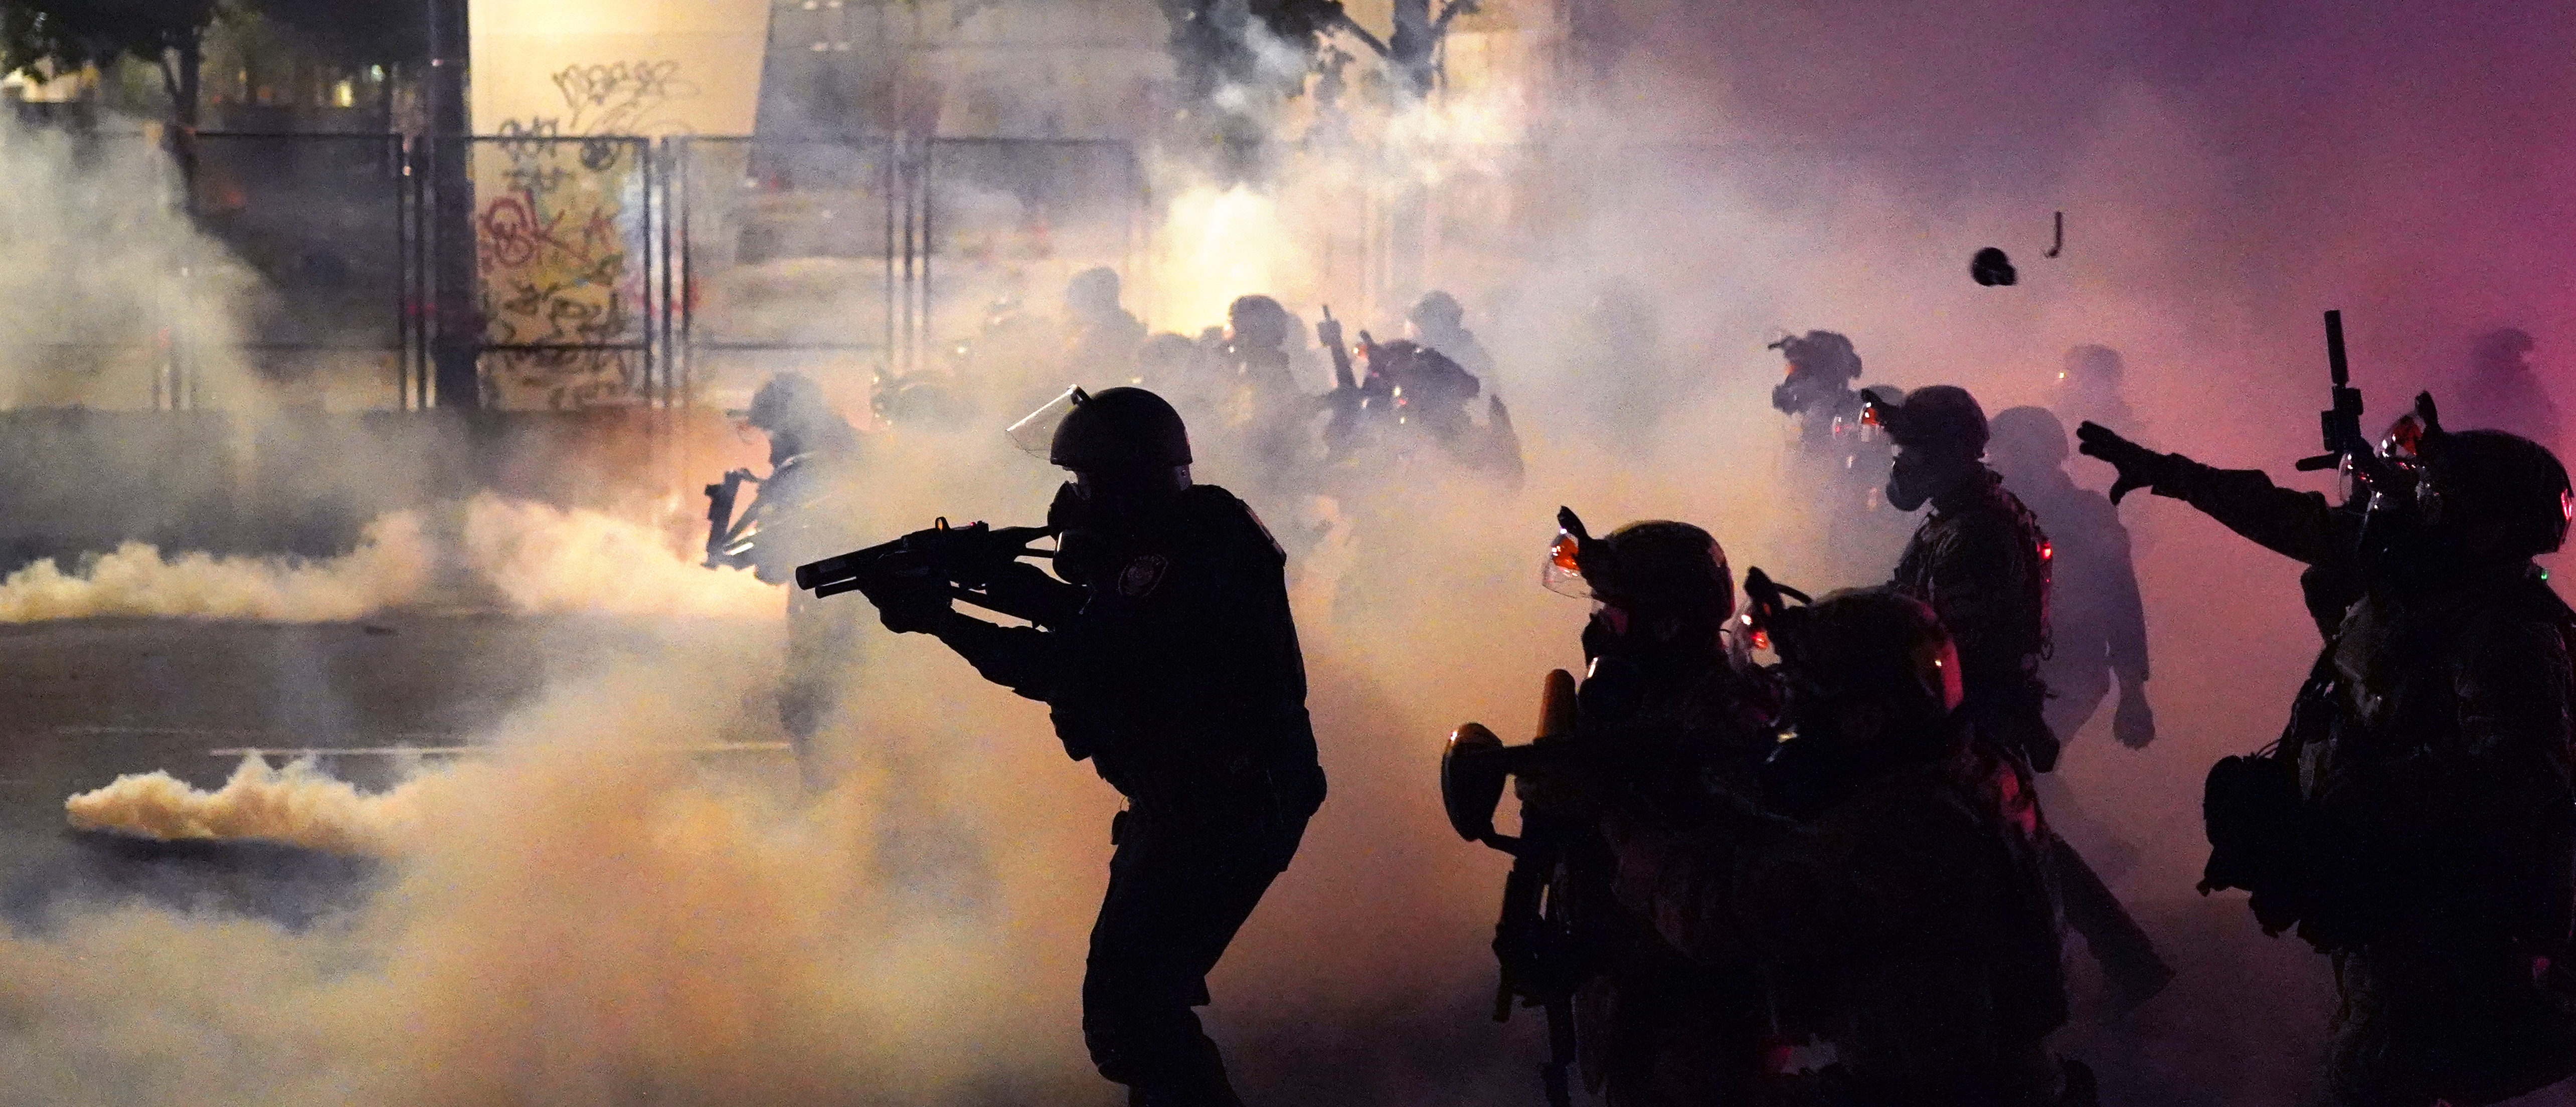 PORTLAND, OR - JULY 24: Federal officers deploy tear gas and less-lethal munitions while dispersing a crowd of about a thousand protesters in front of the Mark O. Hatfield U.S. Courthouse on Thursday, July 24, 2020 in Portland, Oregon. Protesters continued to clash with federal officers Friday morning as President Trump announced plans to deploy similar federal forces to other U.S. cities. (Photo by Nathan Howard/Getty Images)